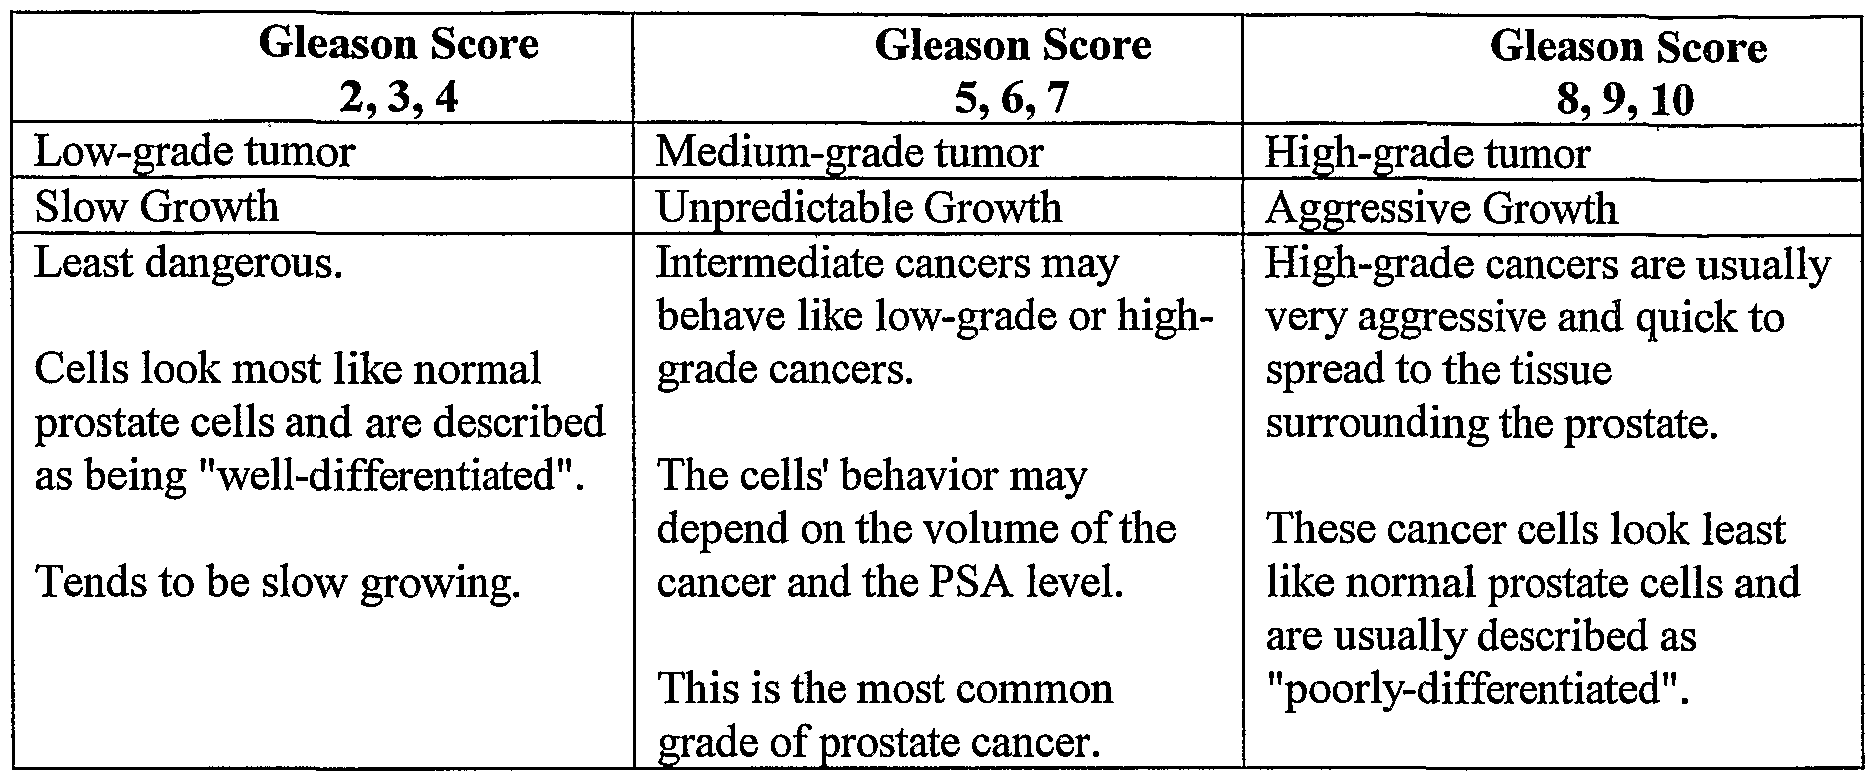 cancer treatment gleason 6 prostate cancer treatmentpatent wo2003050236a2 human genes and gene expression products